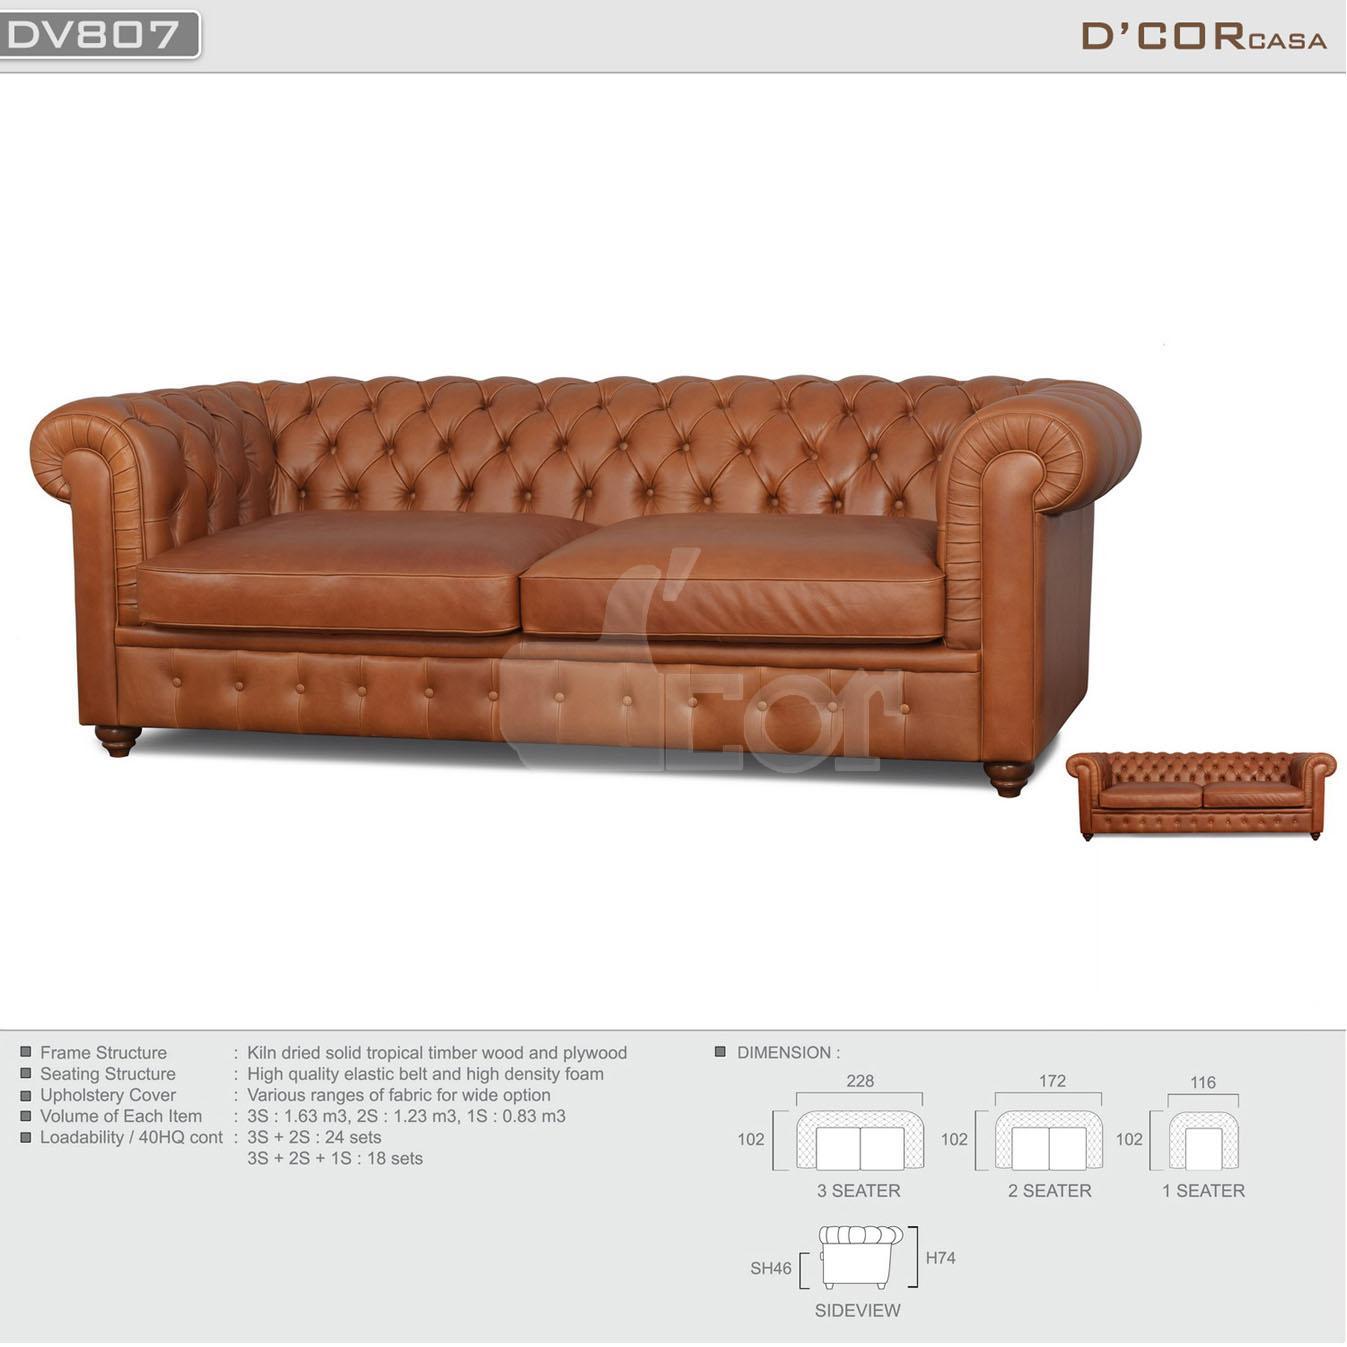 Sofa Malysia DV 807